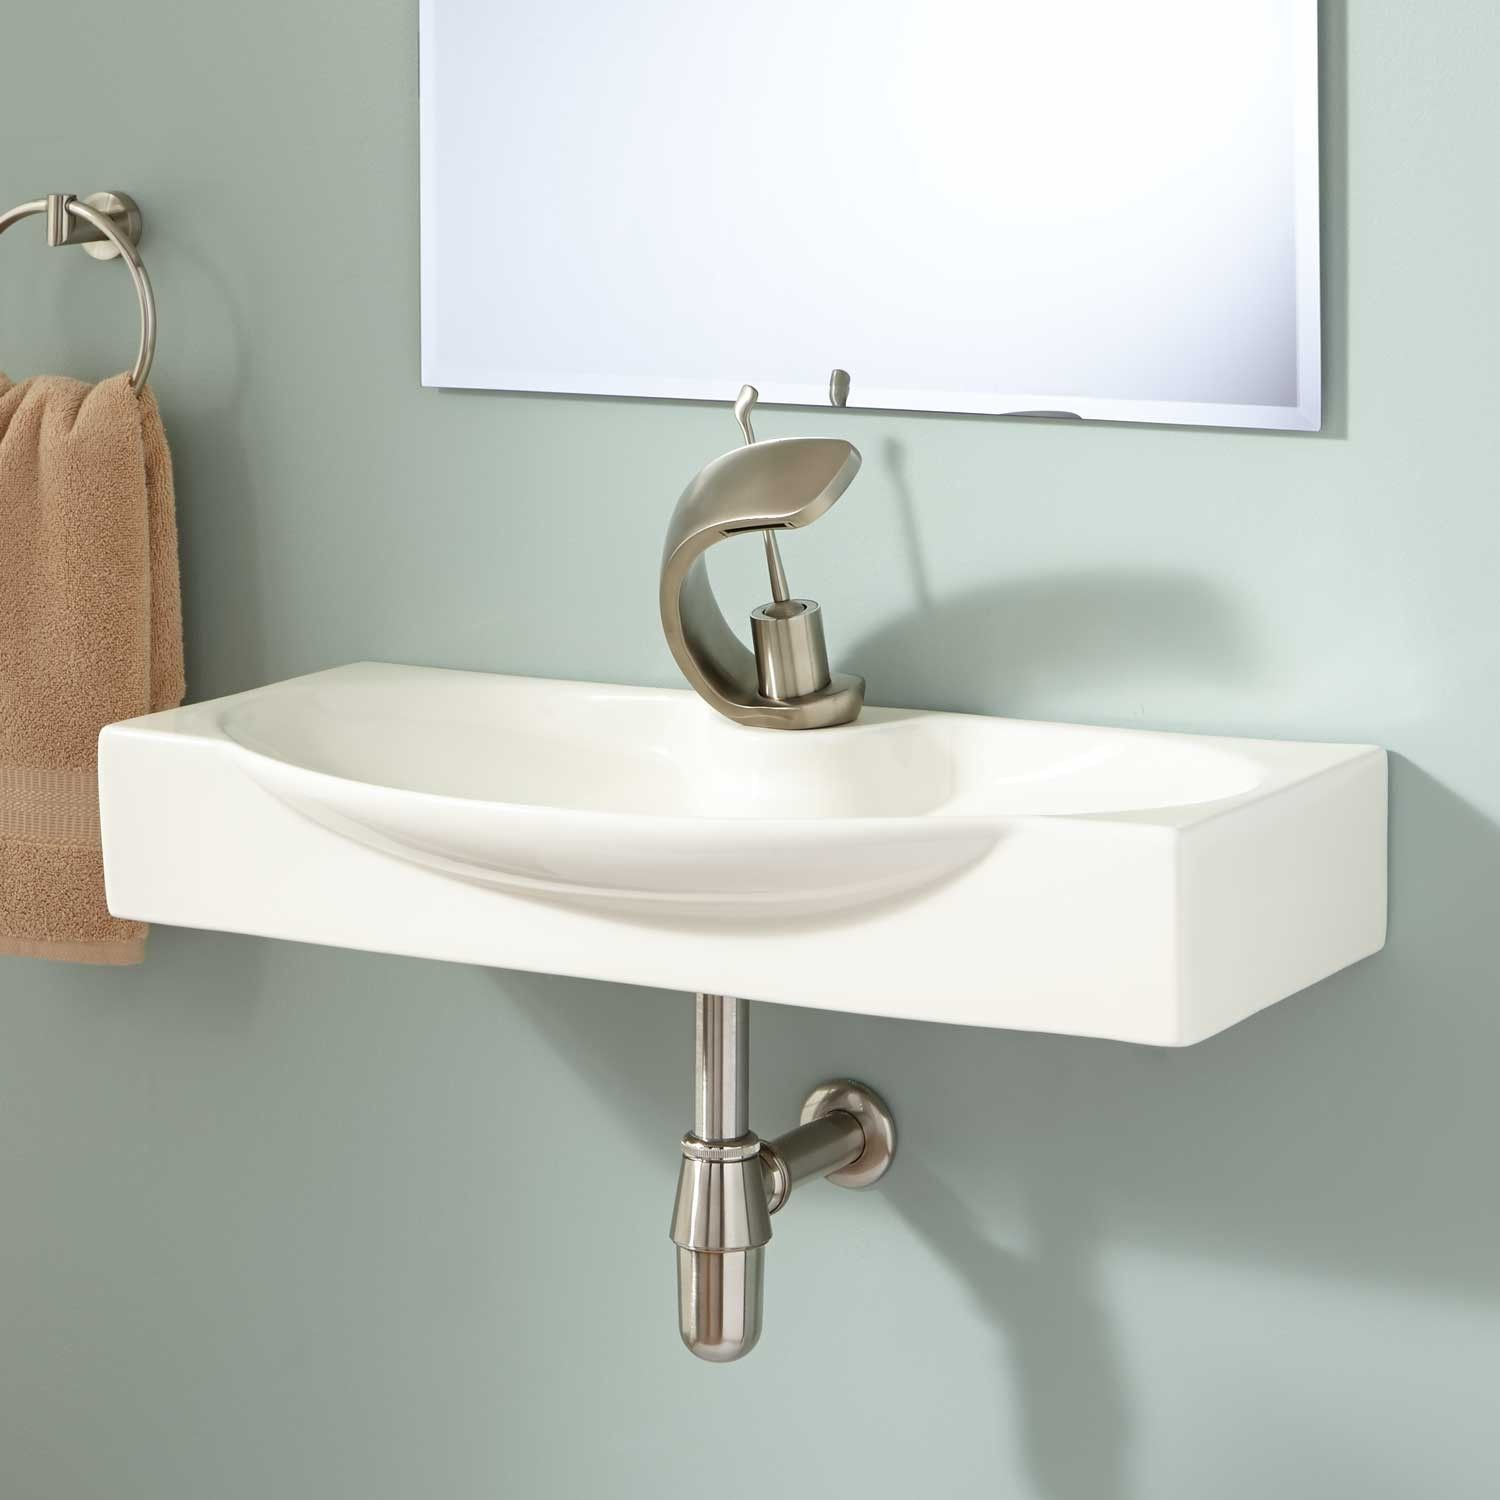 2nd Bathroom Lav Ronan Wall Mount Bathroom Sink Wall Mounted Bathroom Sinks Bathroom Sink Design Modern Bathroom Sink